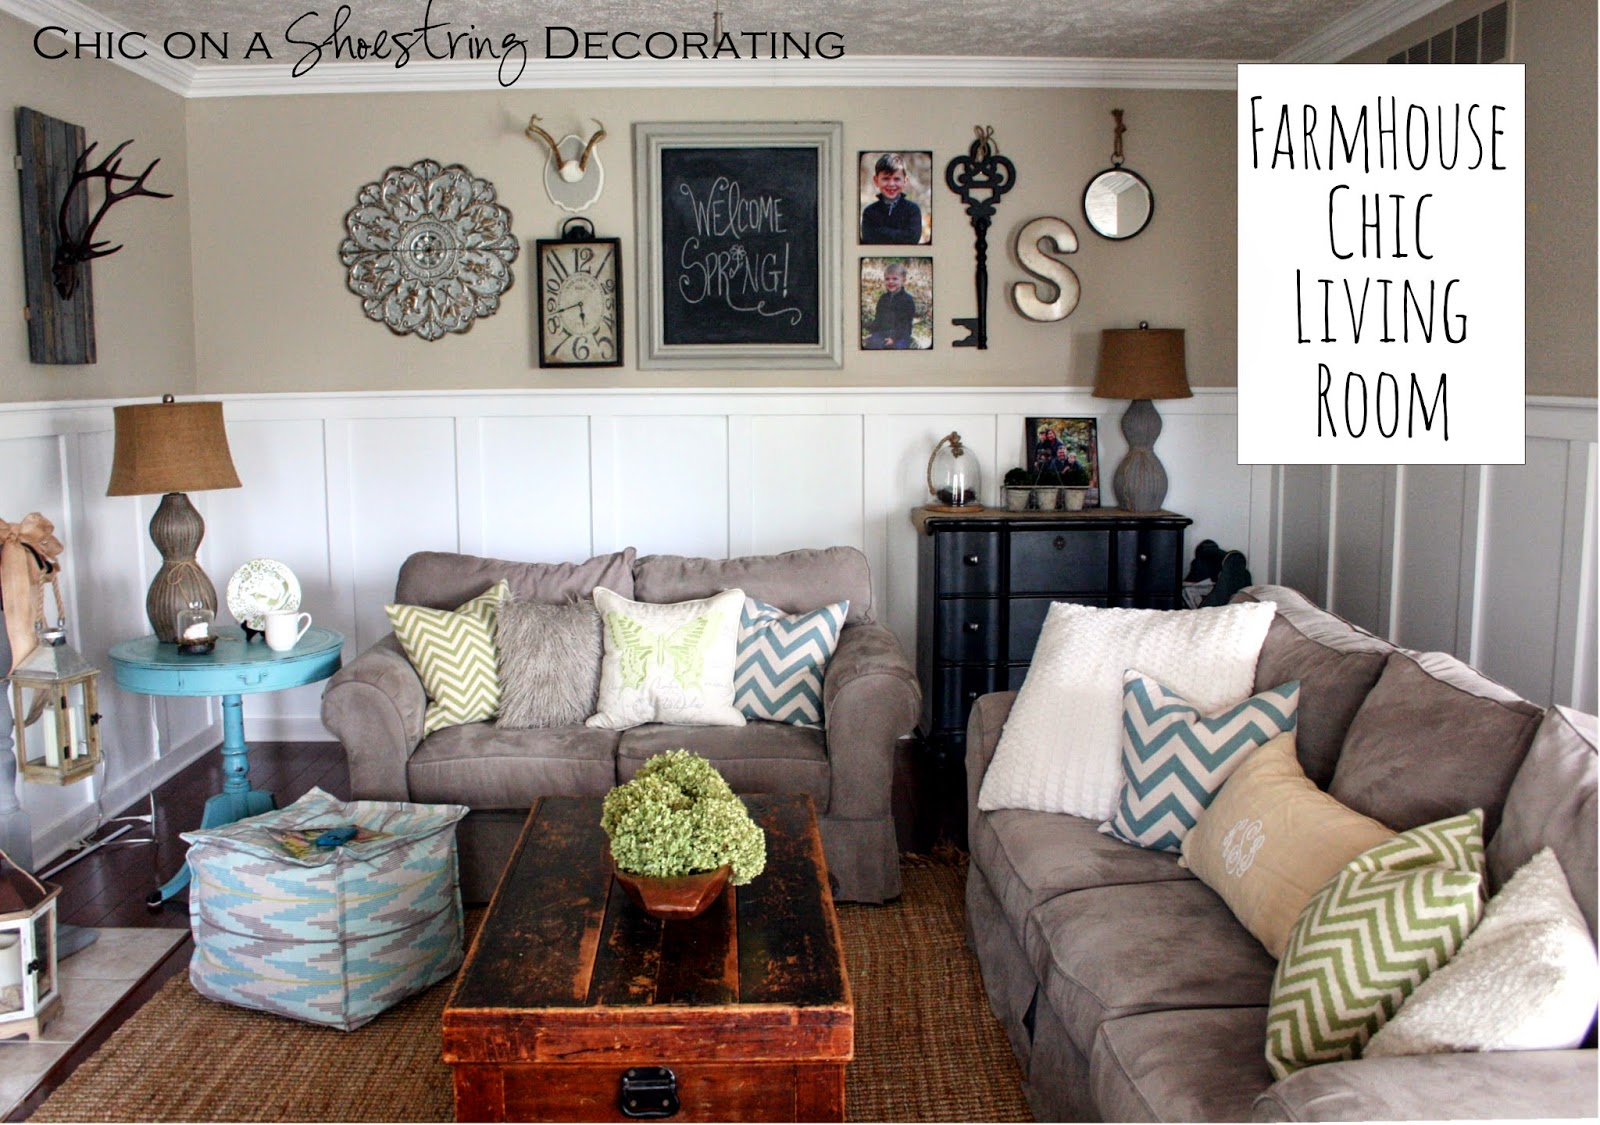 Chic on a shoestring decorating my farmhouse chic living room reveal - Decorated walls living rooms ...